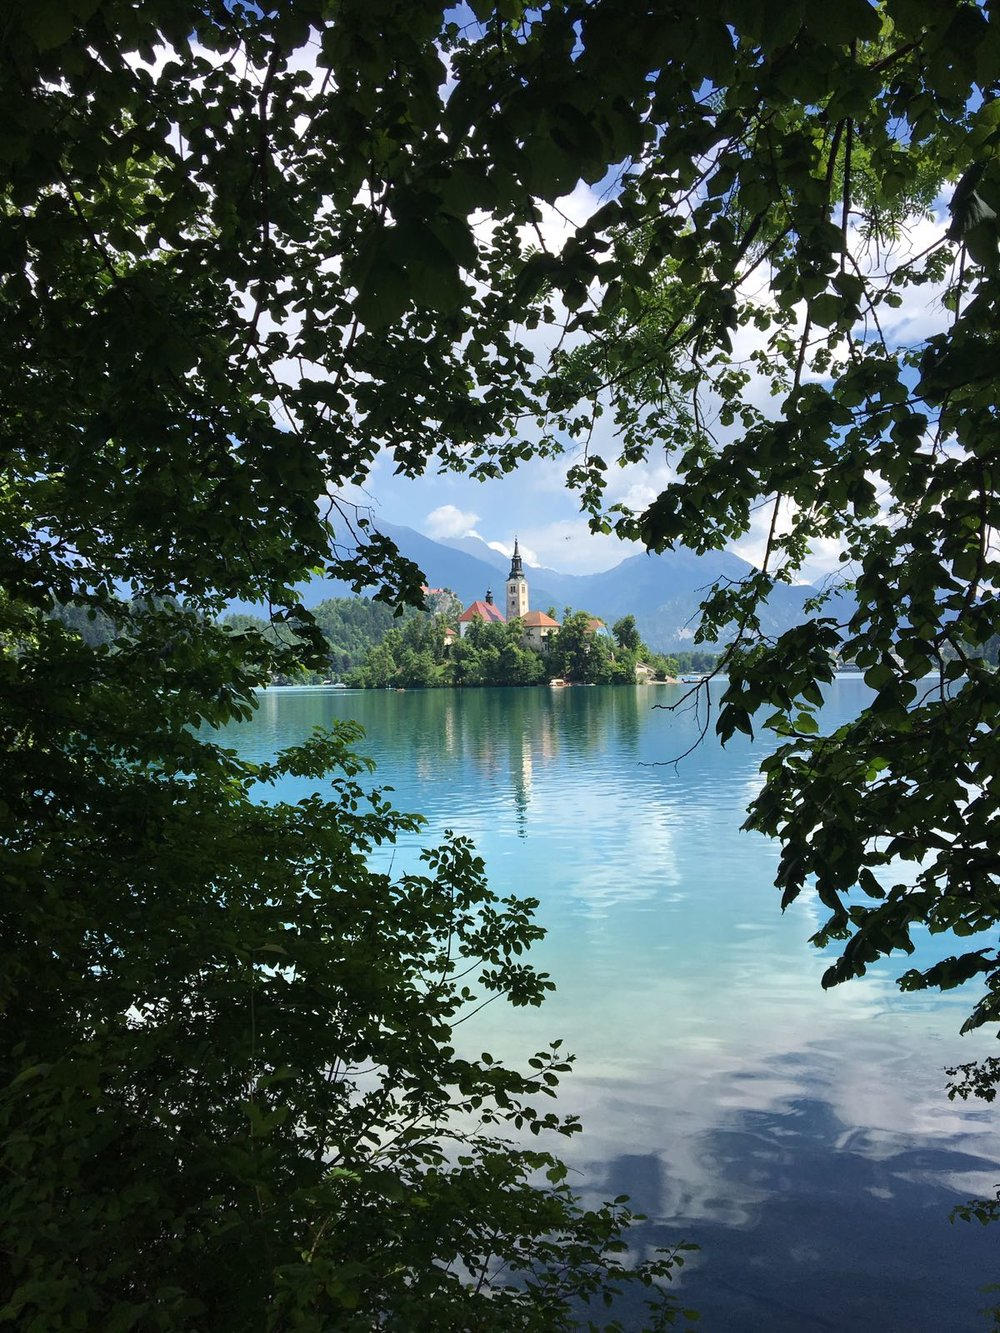 7 Days in Stunning Slovenia  - A family travel experience to lovely university town Ljublana, with scenic day trips to nearby places